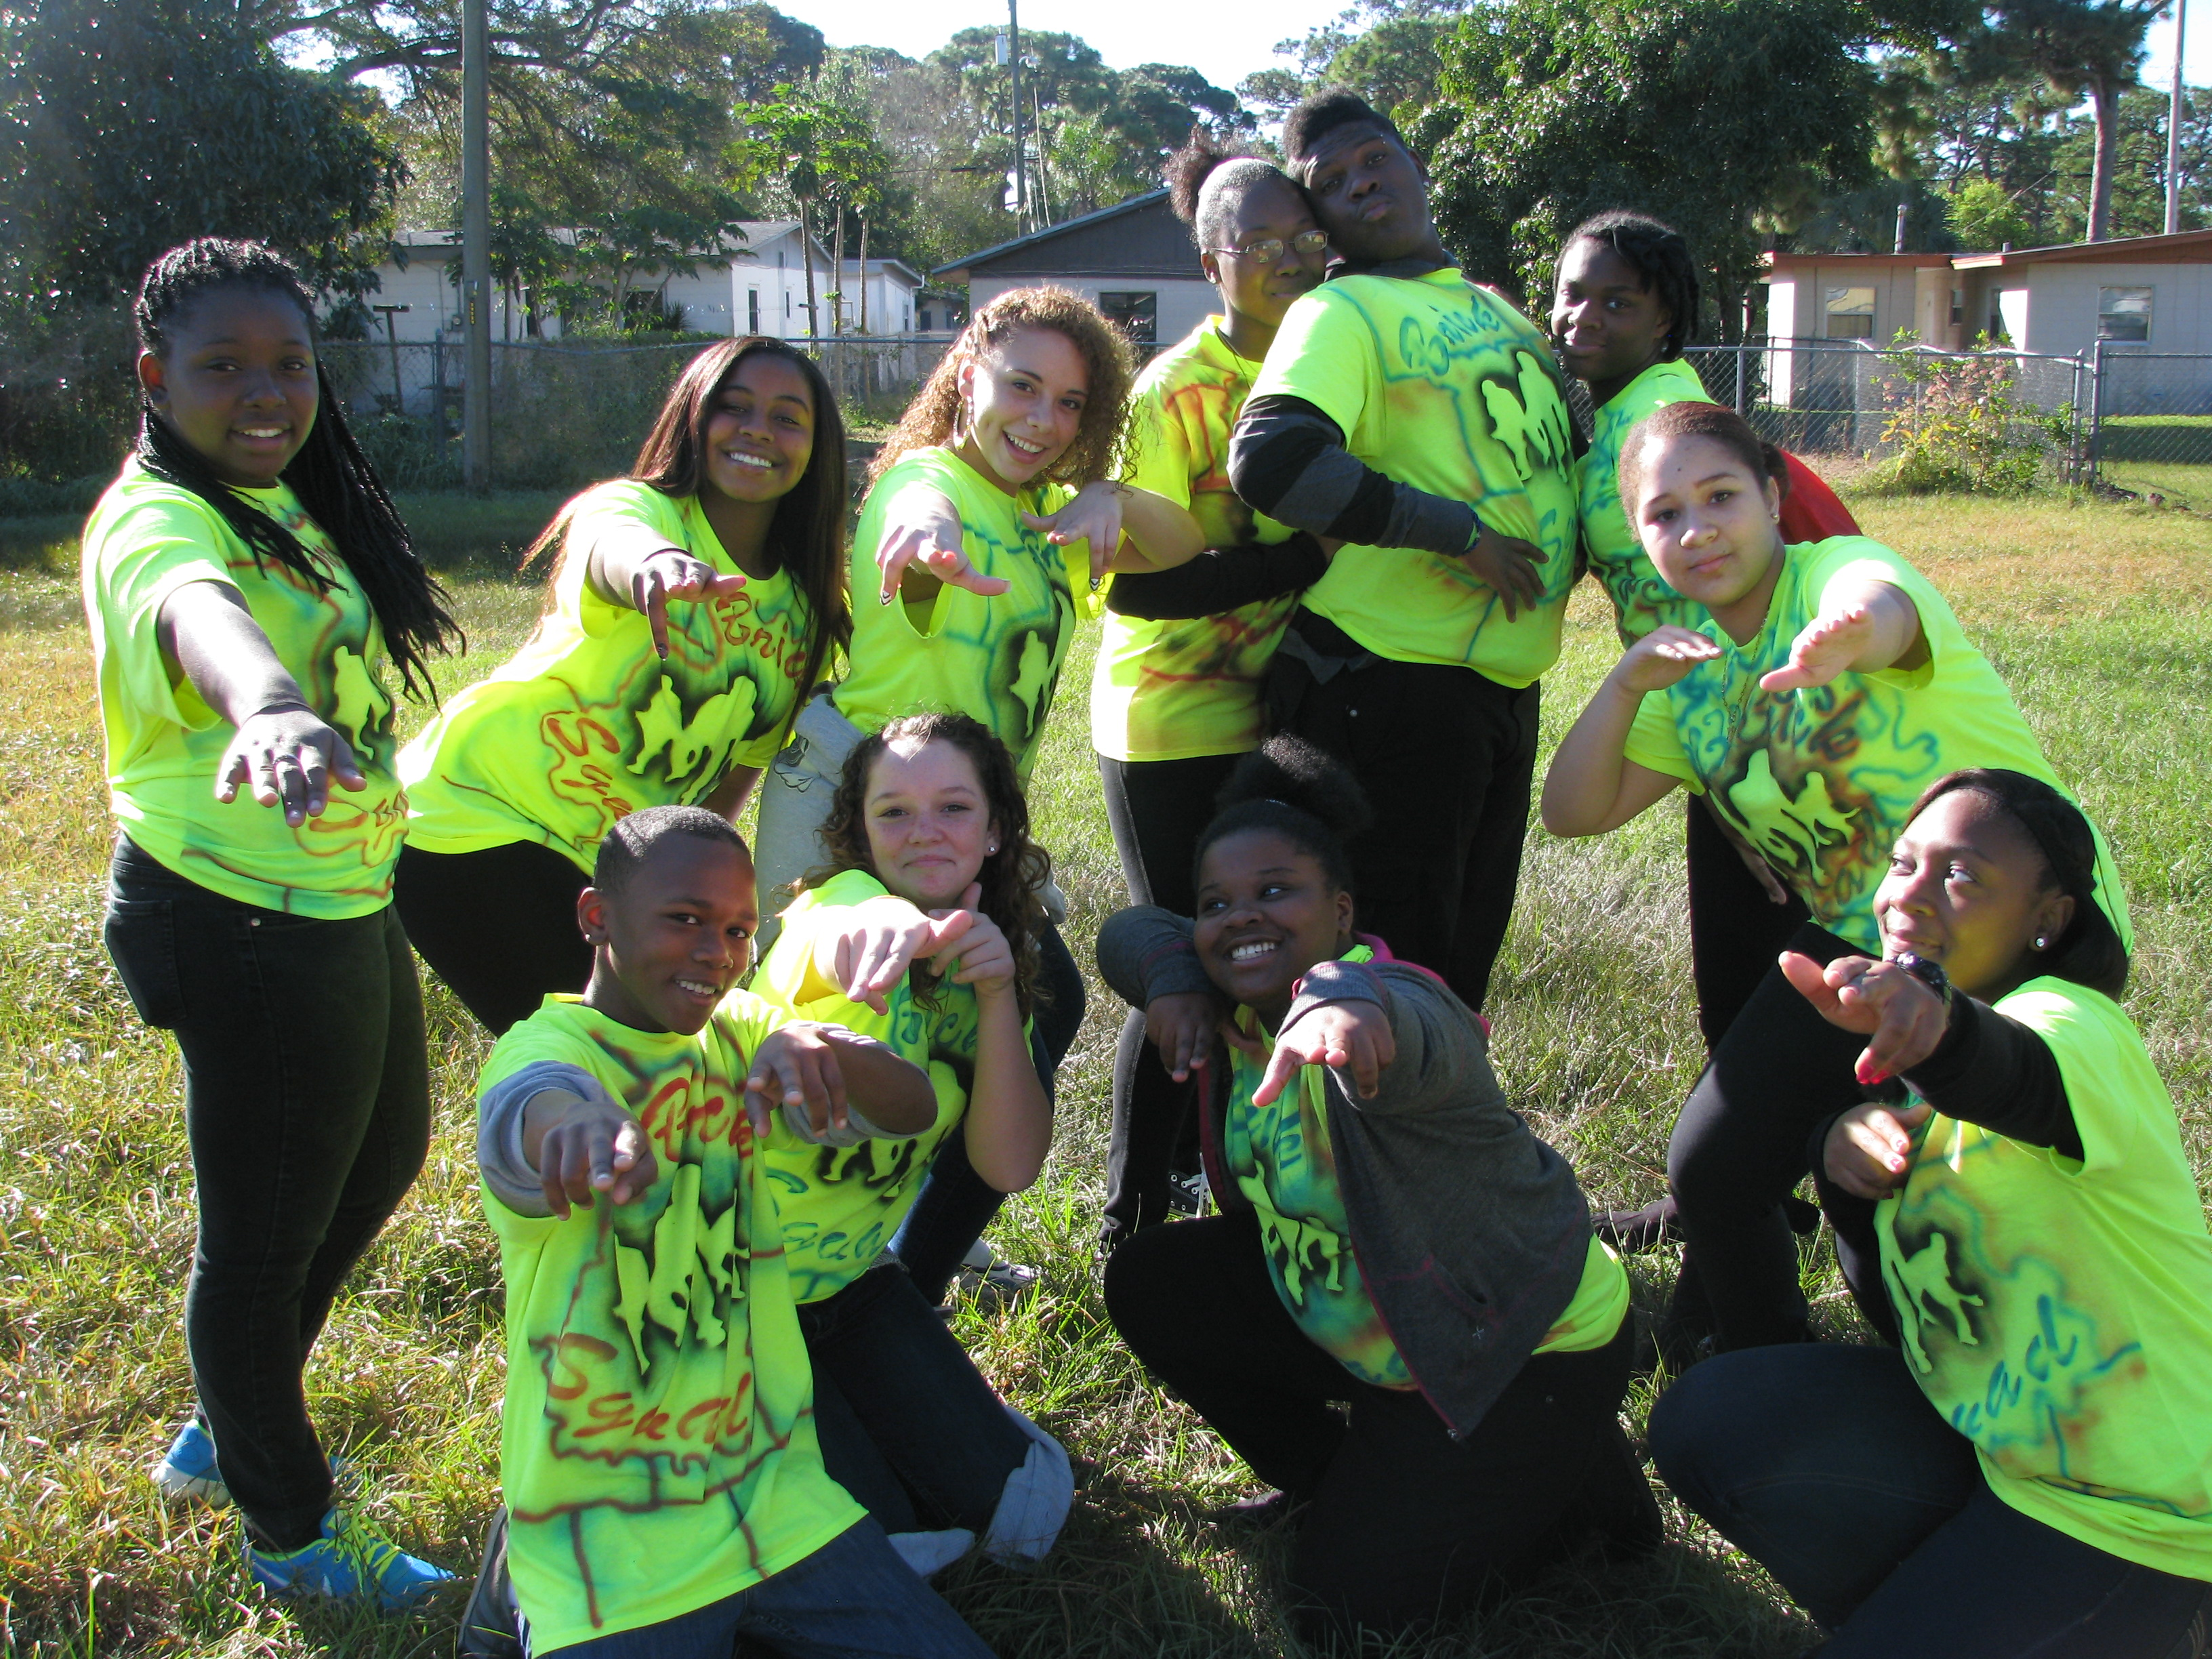 Southport Middle School step team stepping up its act